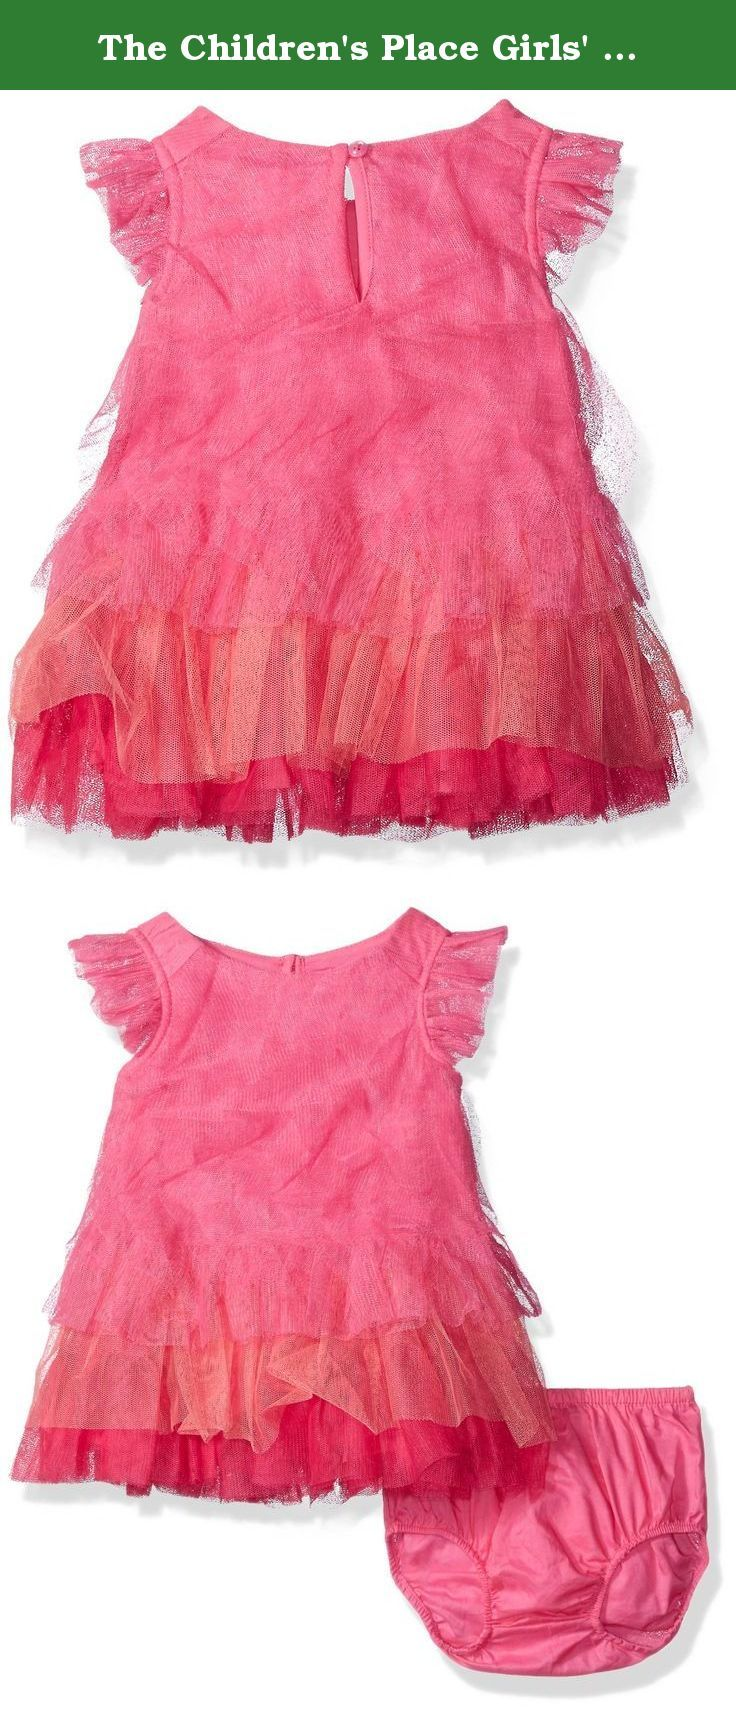 The Children's Place Girls' Ruffle Dress, Pink Blast, 6-9 Months. The dress for your darling debutante.